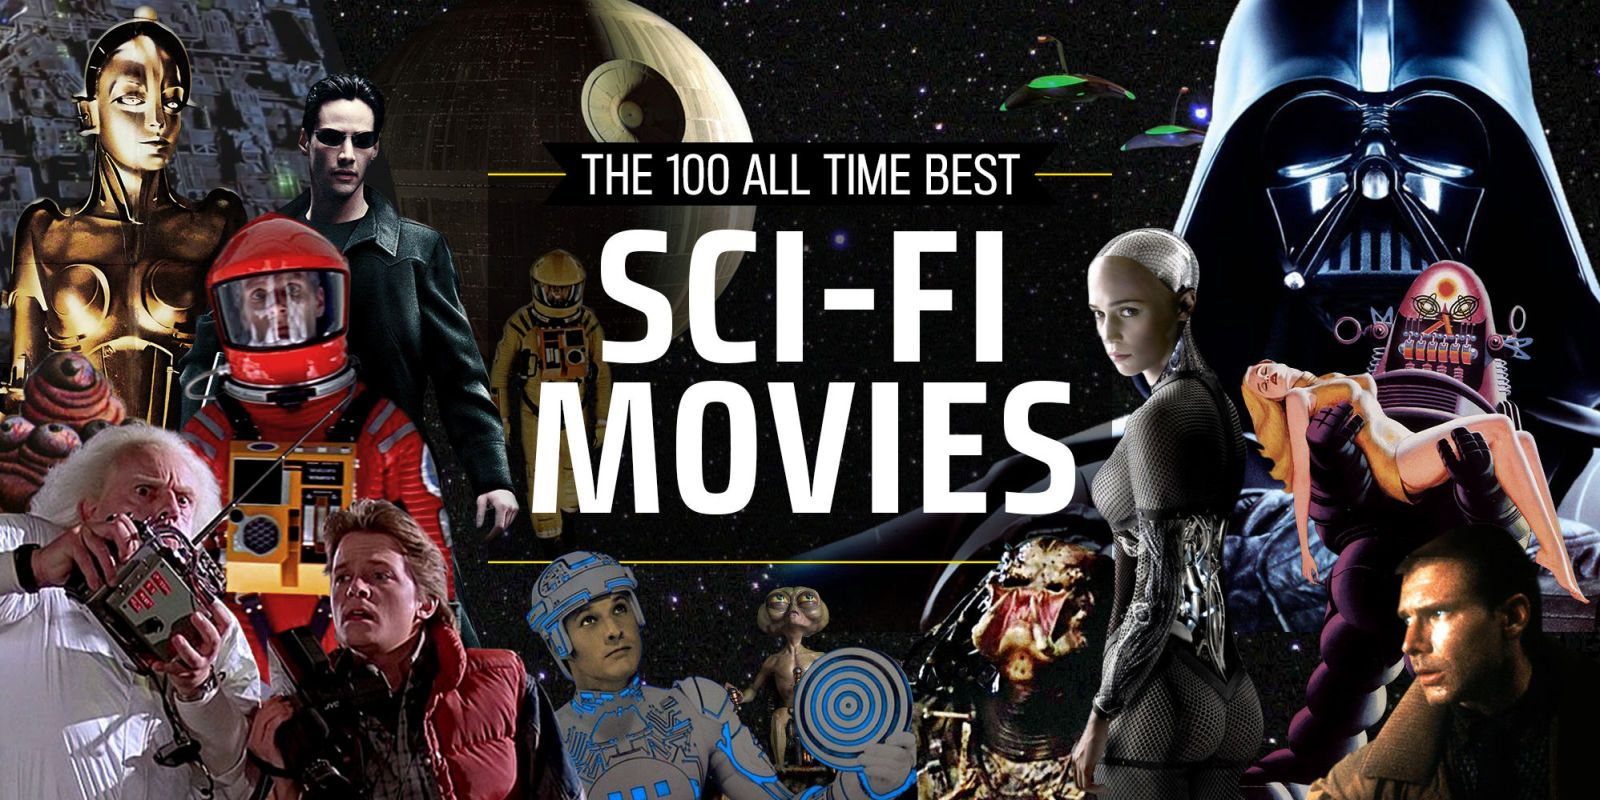 The 100 Best Sci-Fi Movies of All Time